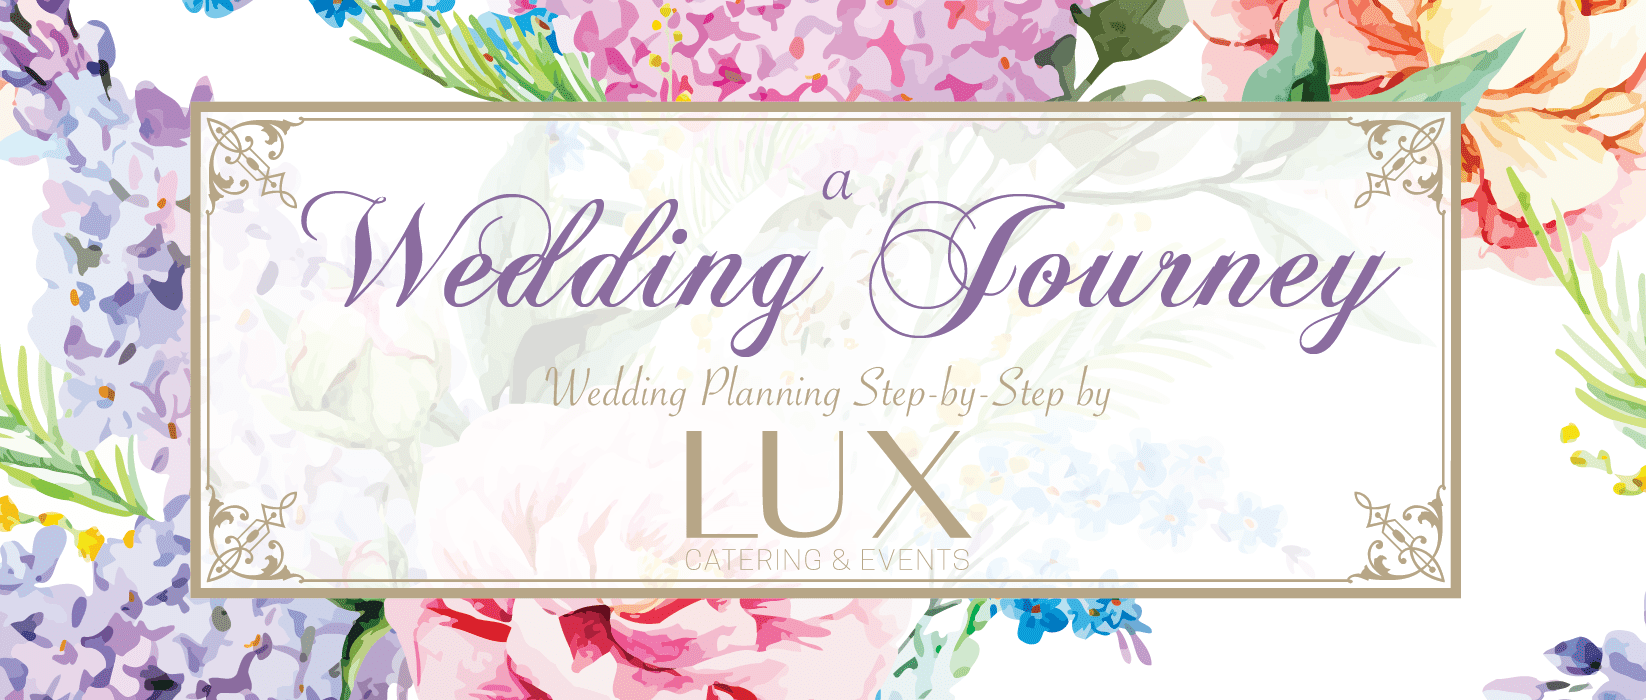 Wedding planning consultation help from LUX Catering & Events - Utah's premier wedding planners and wedding caterers